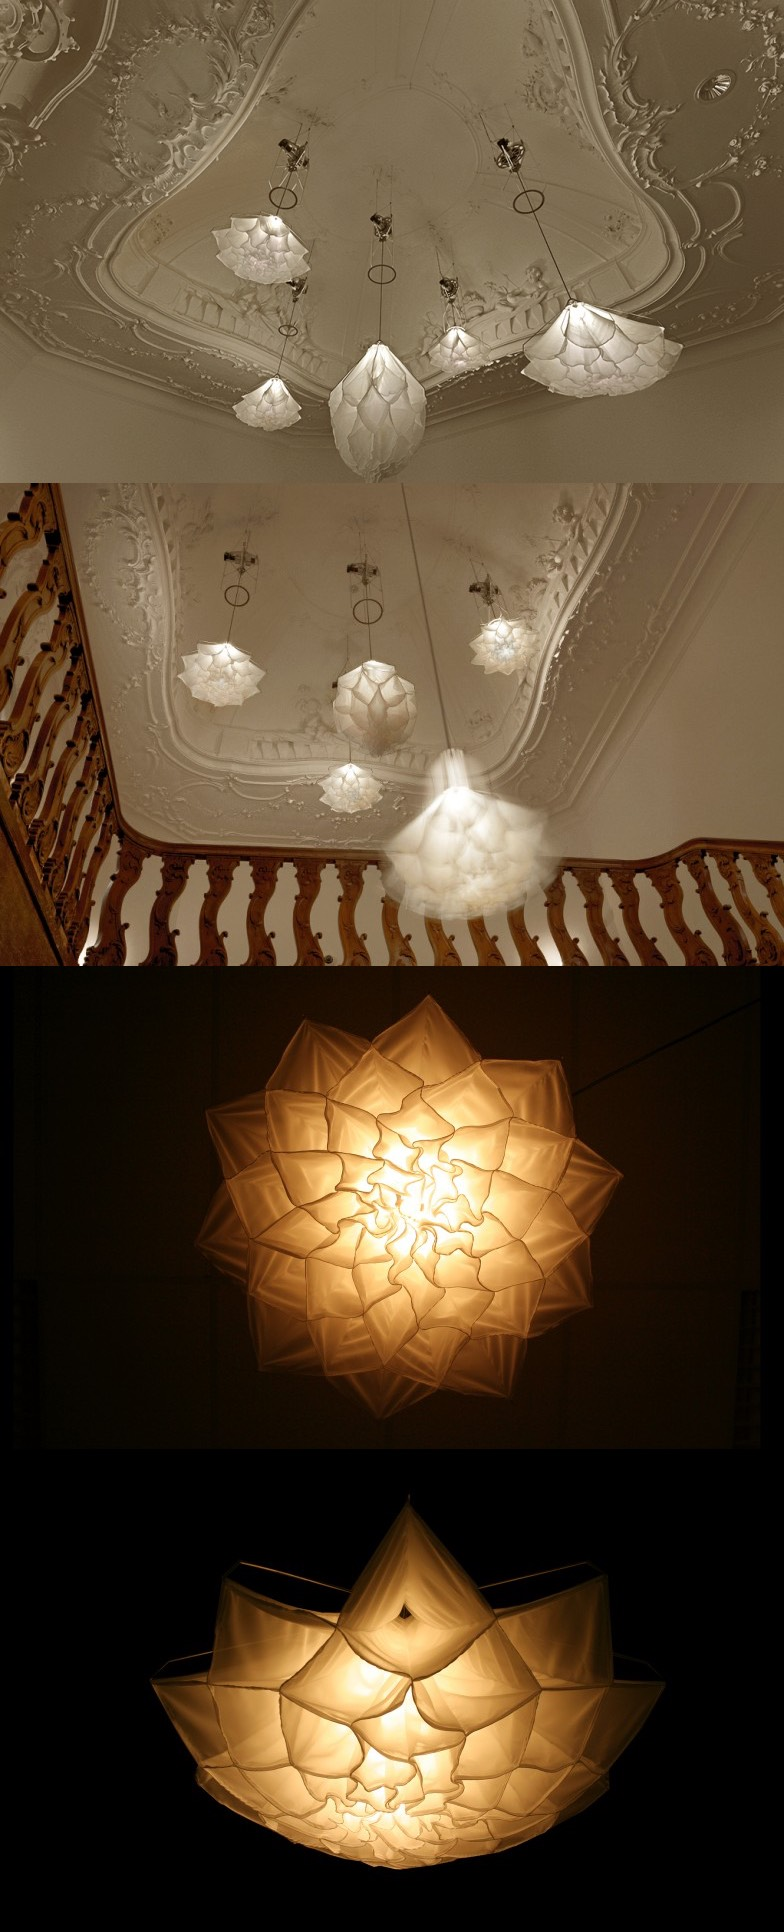 Blooming Light - A set of extraordinary lights